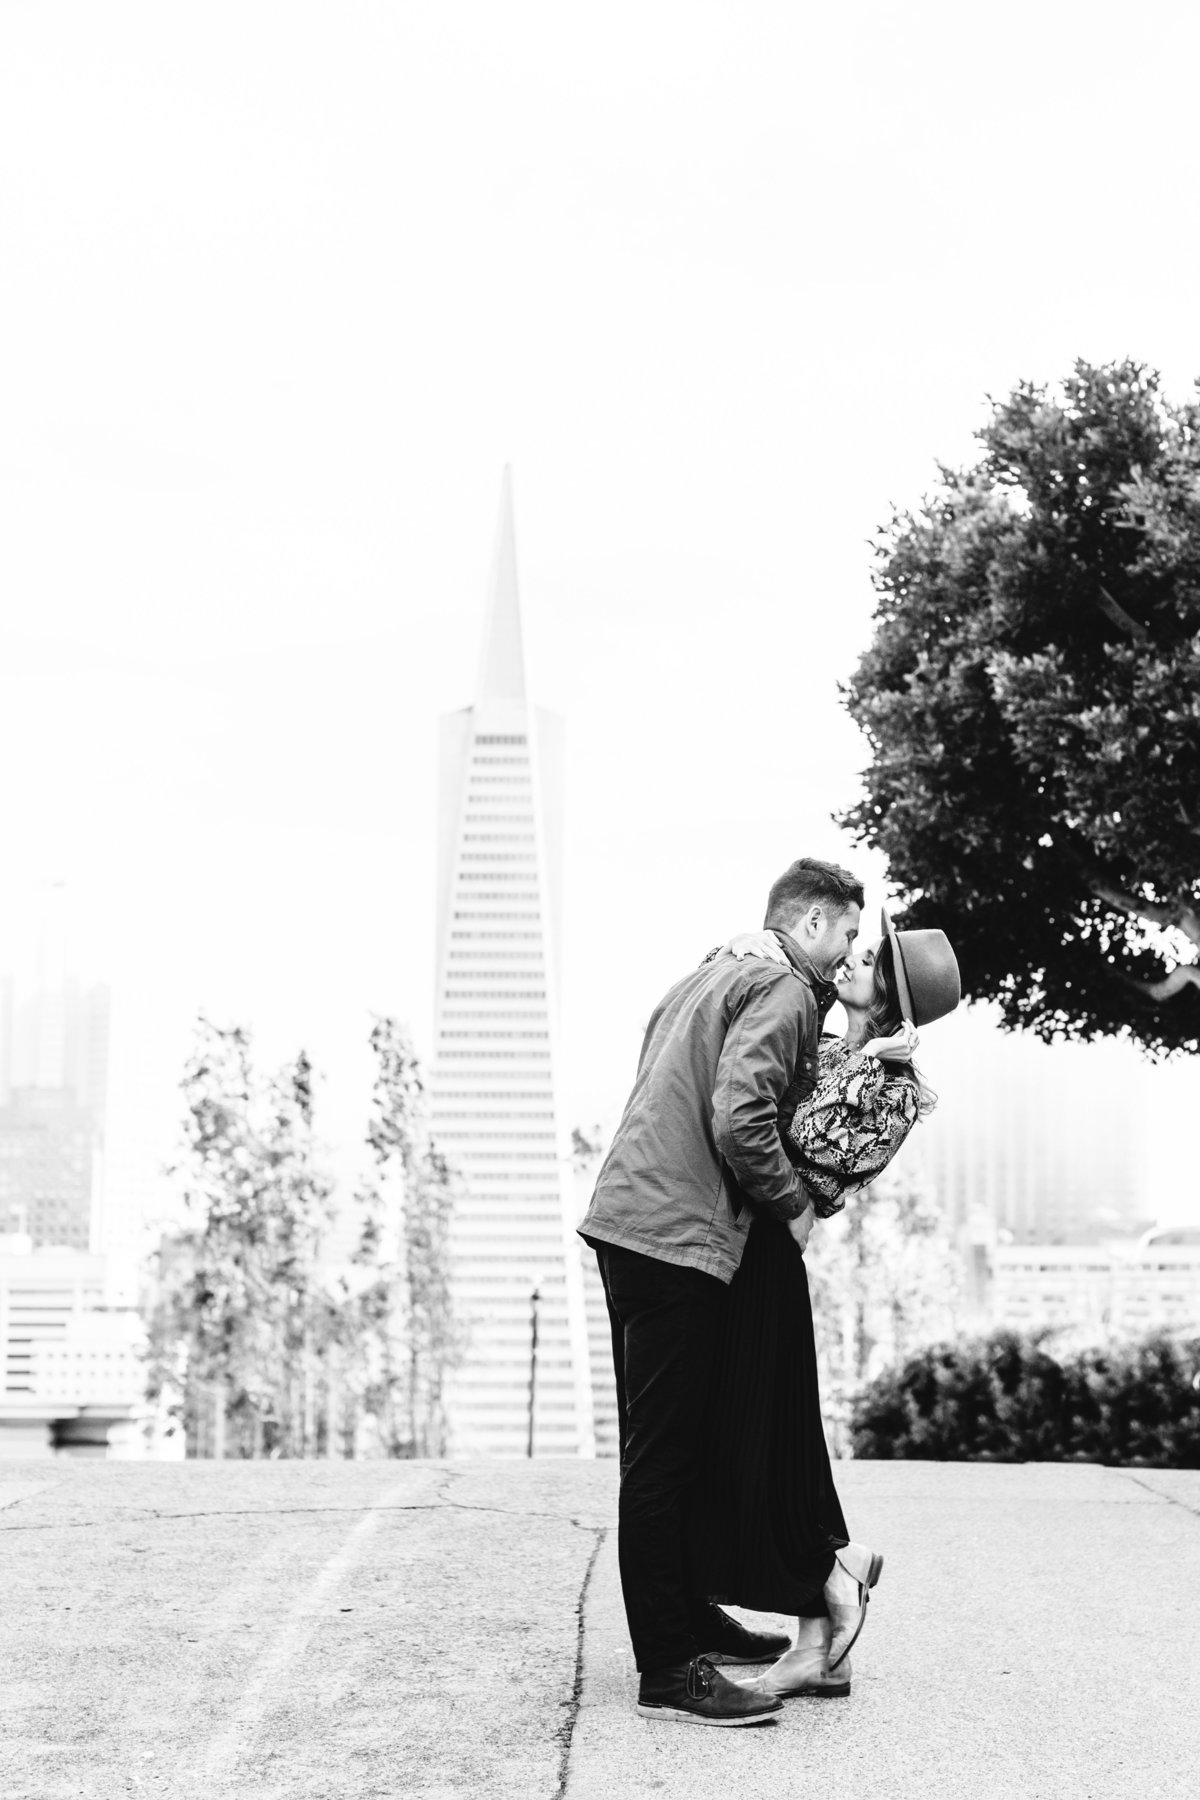 Best California Engagement Photographer-Jodee Debes Photography-52